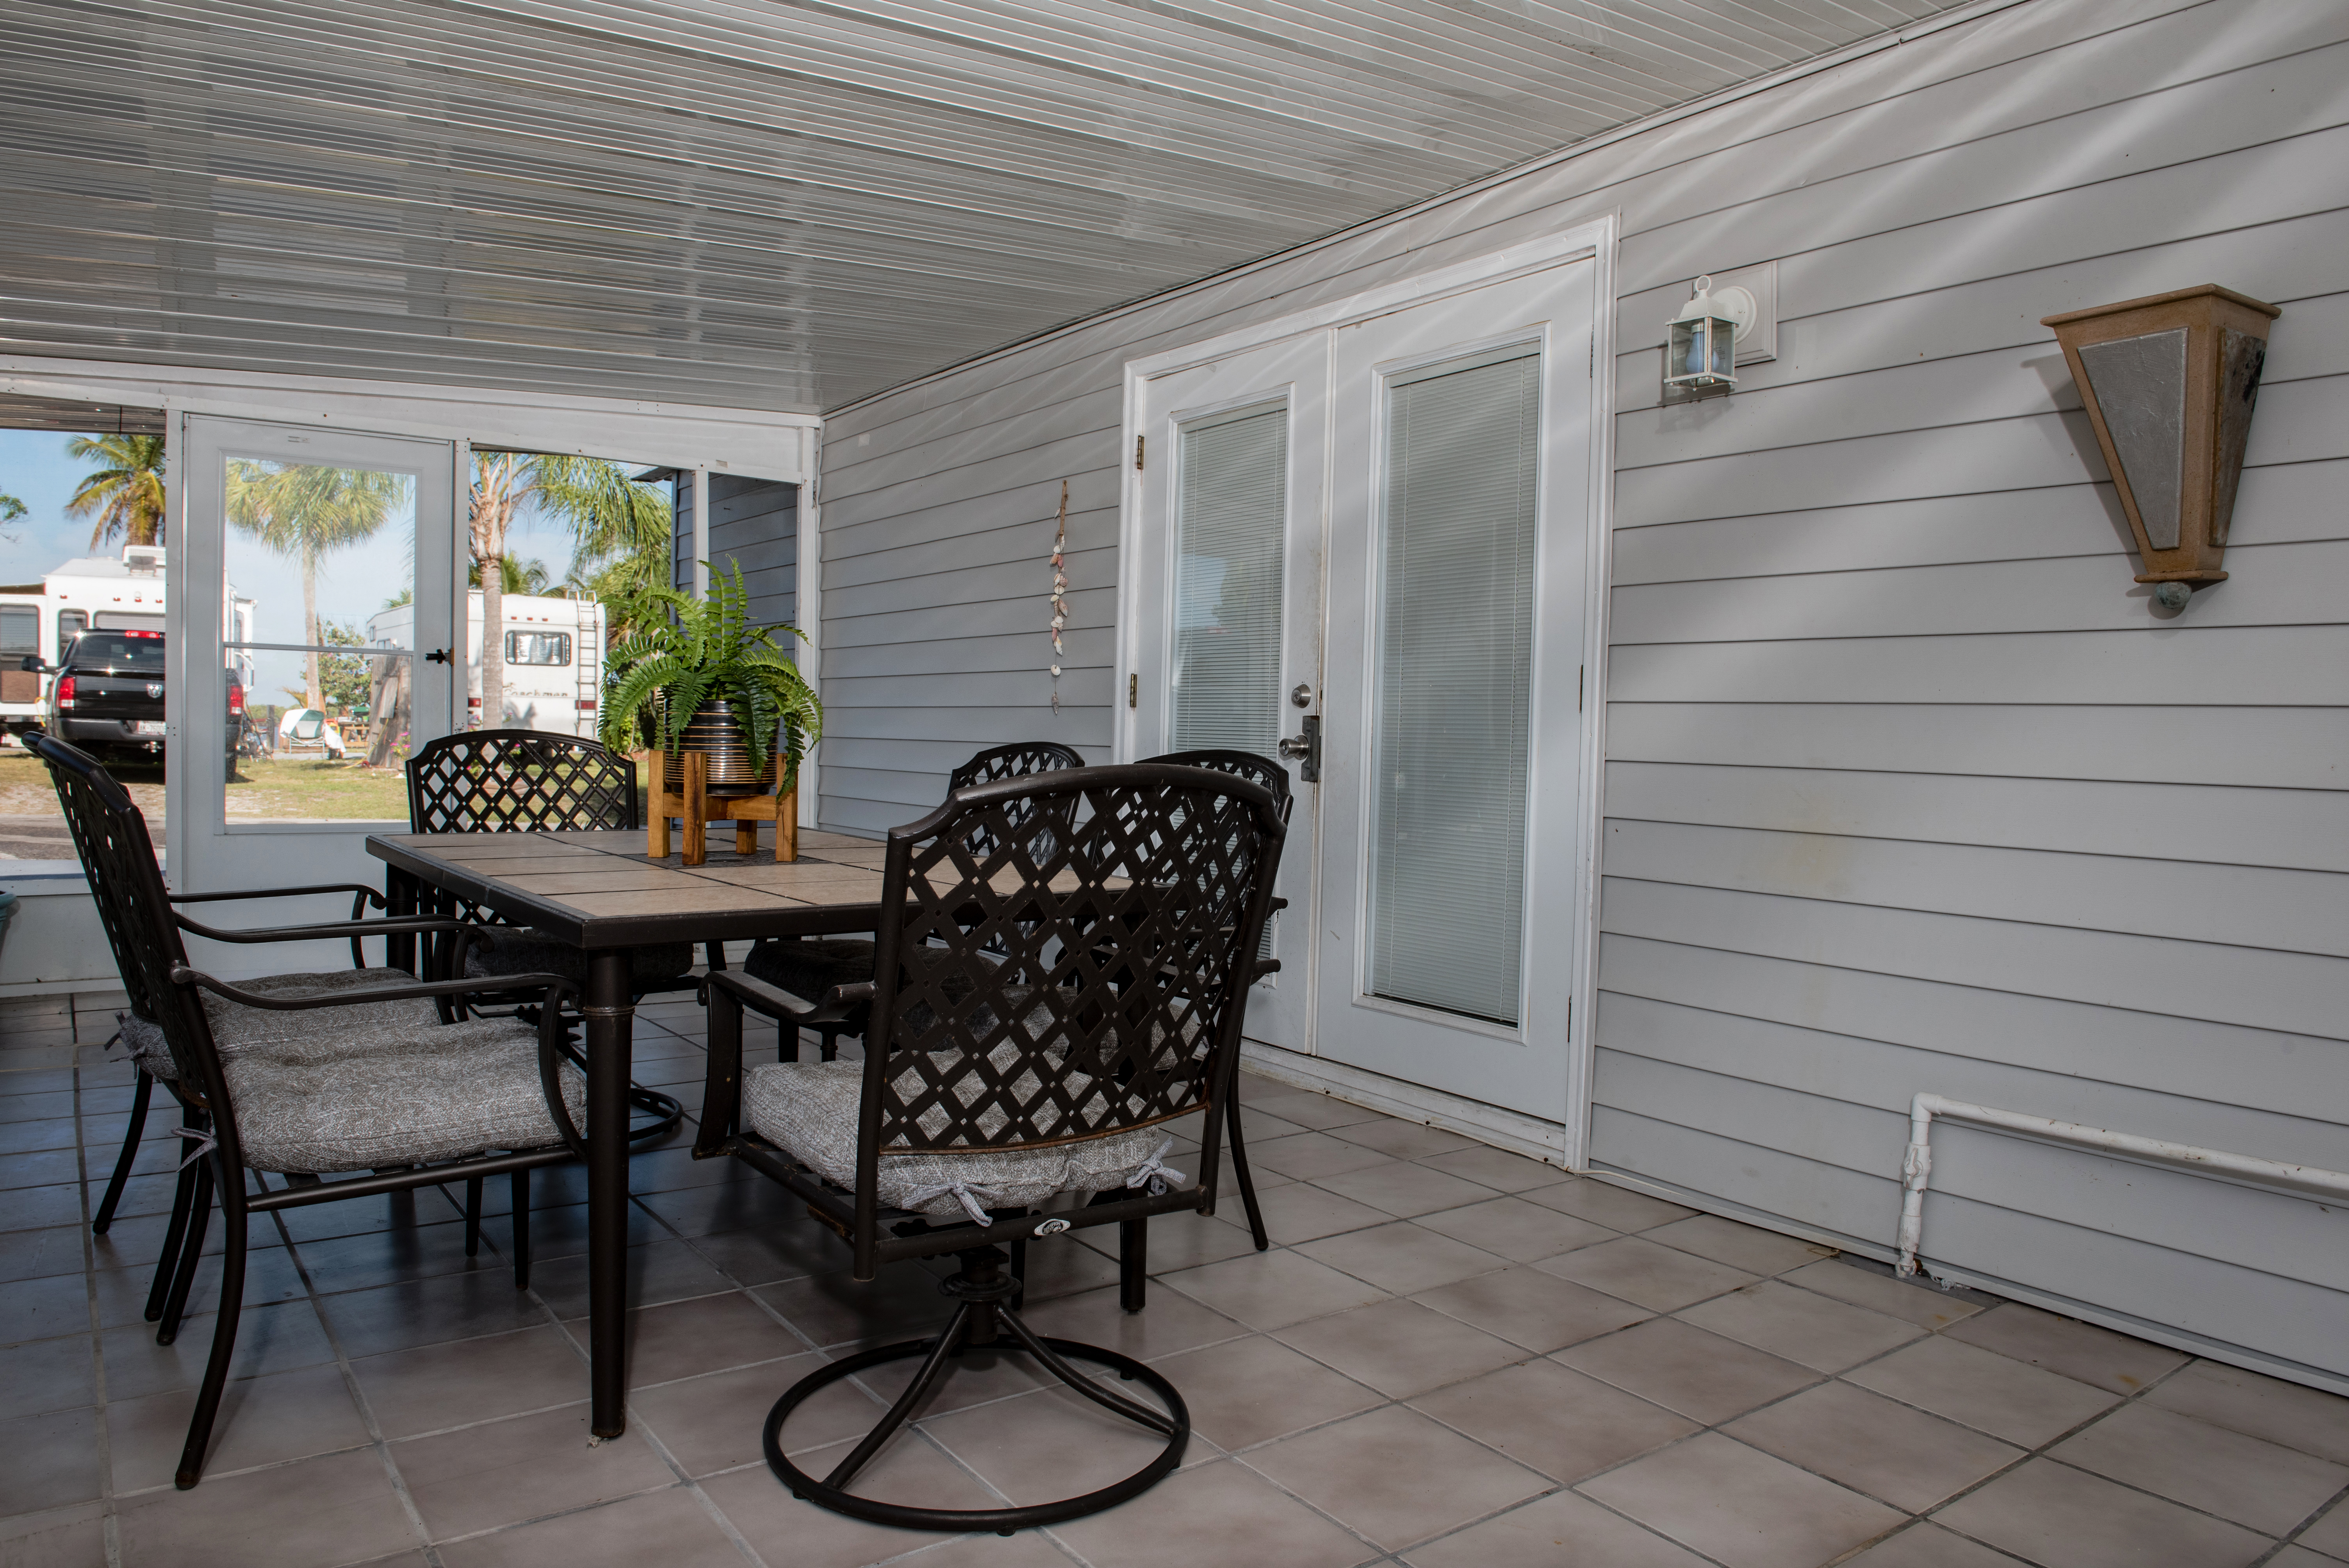 One of the porches at the Captain's Lodge.